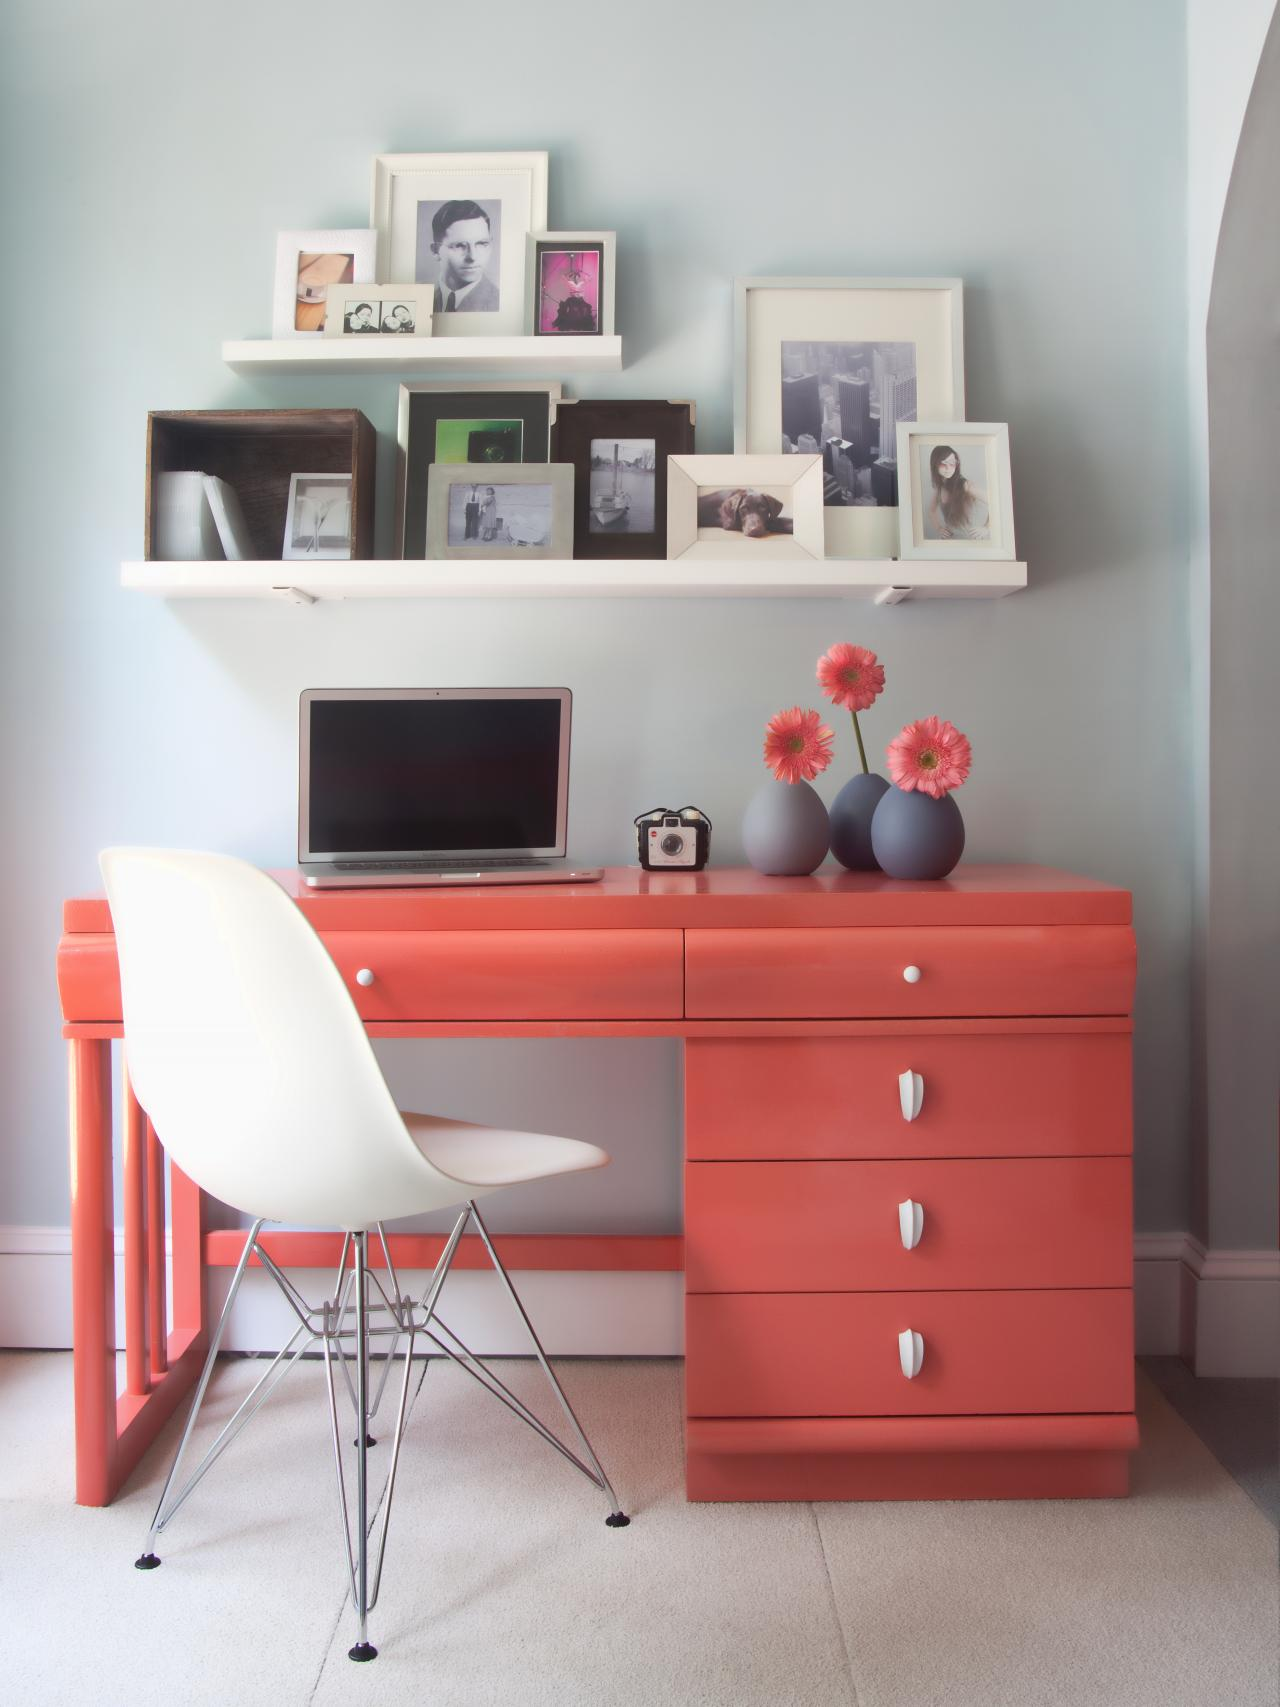 How To Paint Furniture. How To Paint Furniture   HGTV